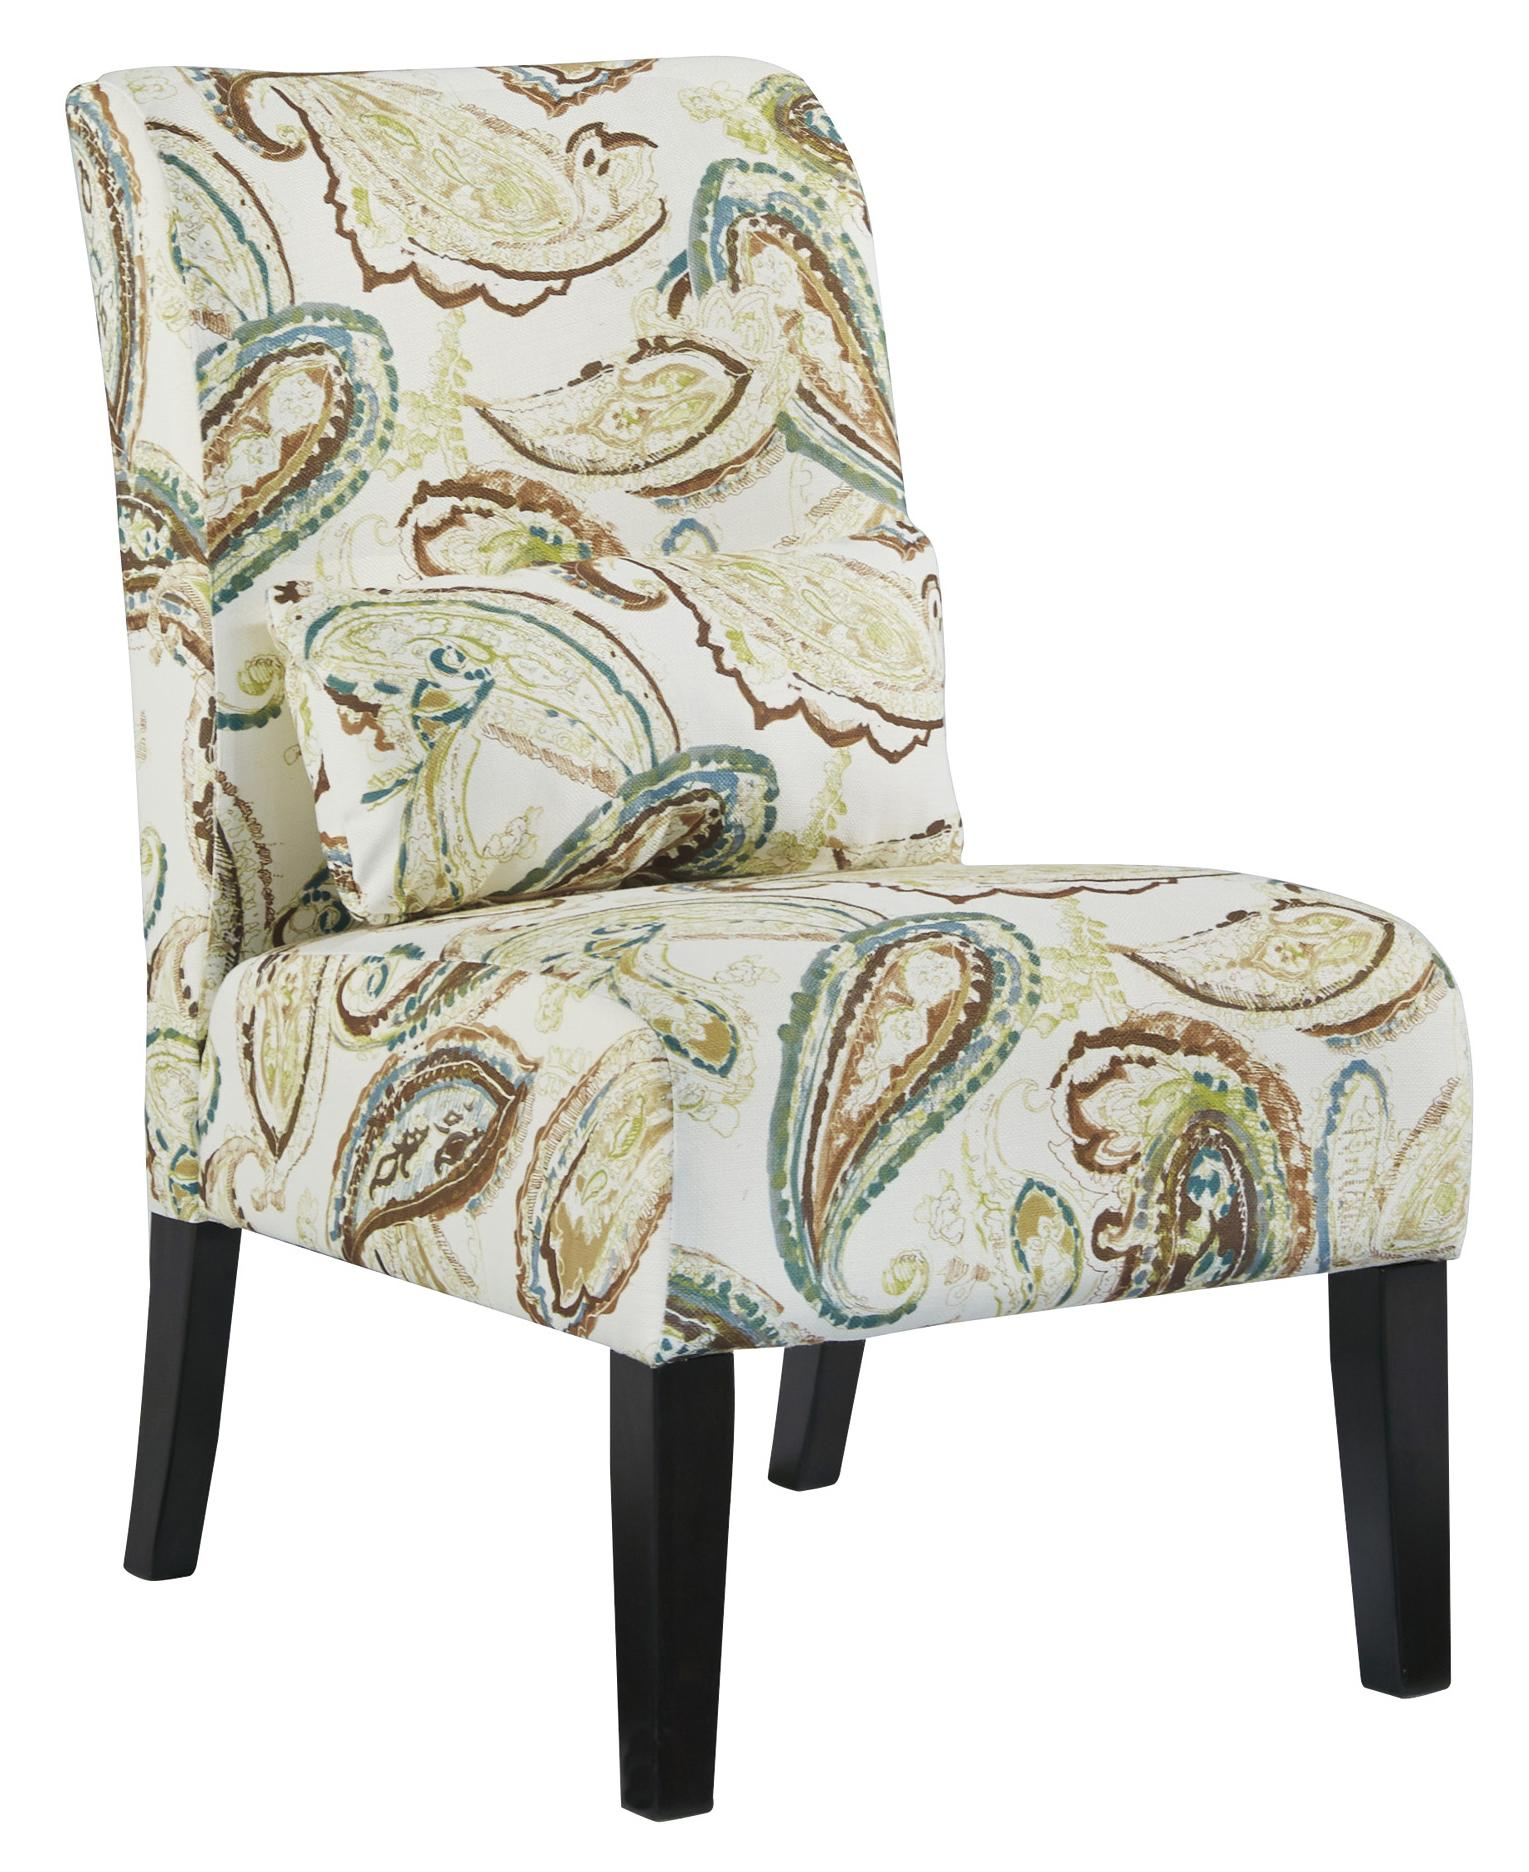 Signature Design by Ashley Annora - Paisley Accent Chair - Item Number: 6160660